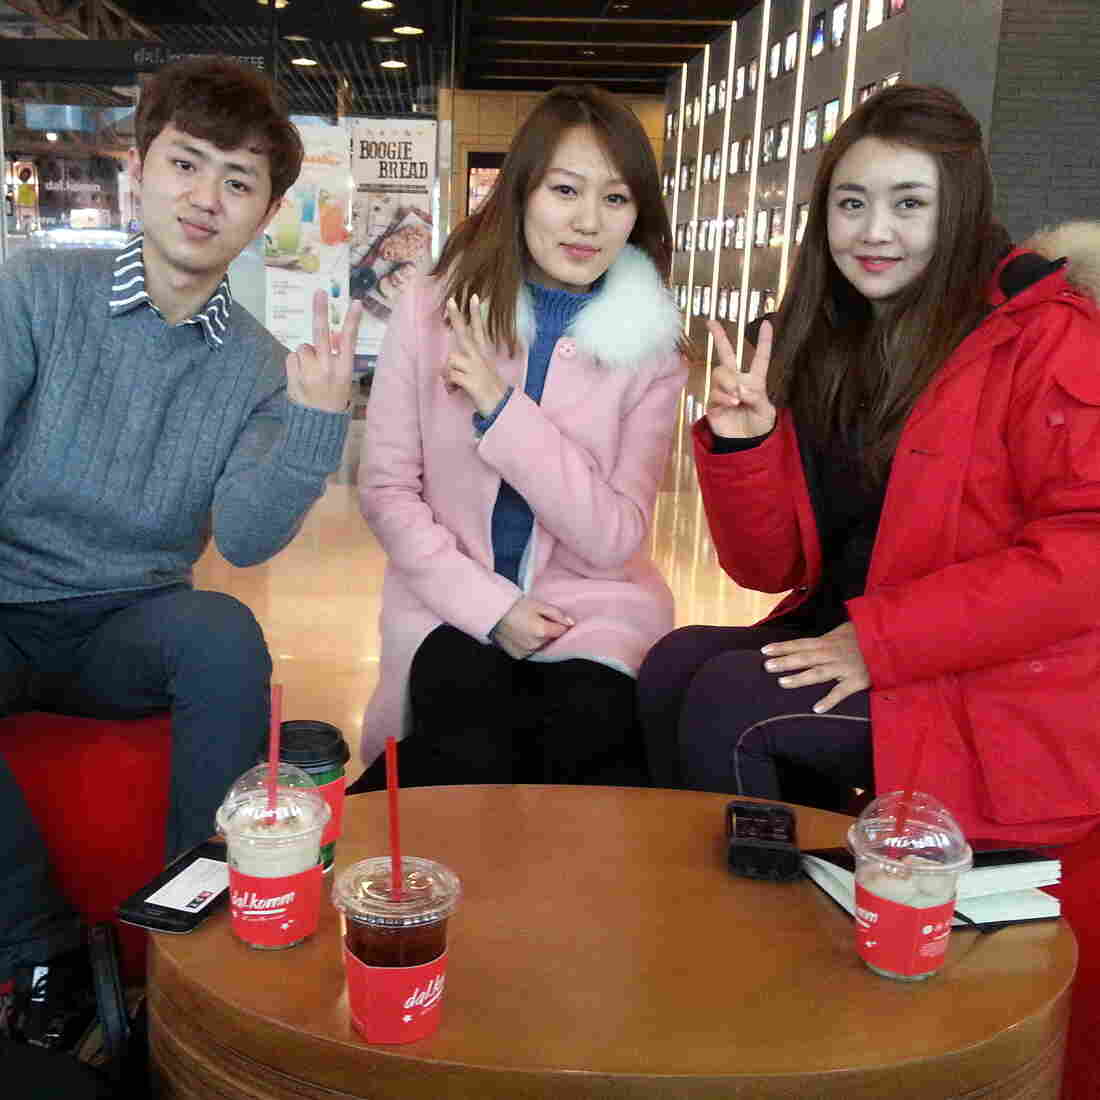 """Han Seohee (right) and fellow North Korean defectors Lee Gwang-sung (left) and Hwang Soyeon (center) are regulars on Moranbong Club, a South Korean talk show featuring North Korean defectors. """"There's a lot of prejudice toward North Korean defectors in South Korea,"""" Han says. """"So I wanted to show South Koreans that we're living here and trying the best we can."""""""